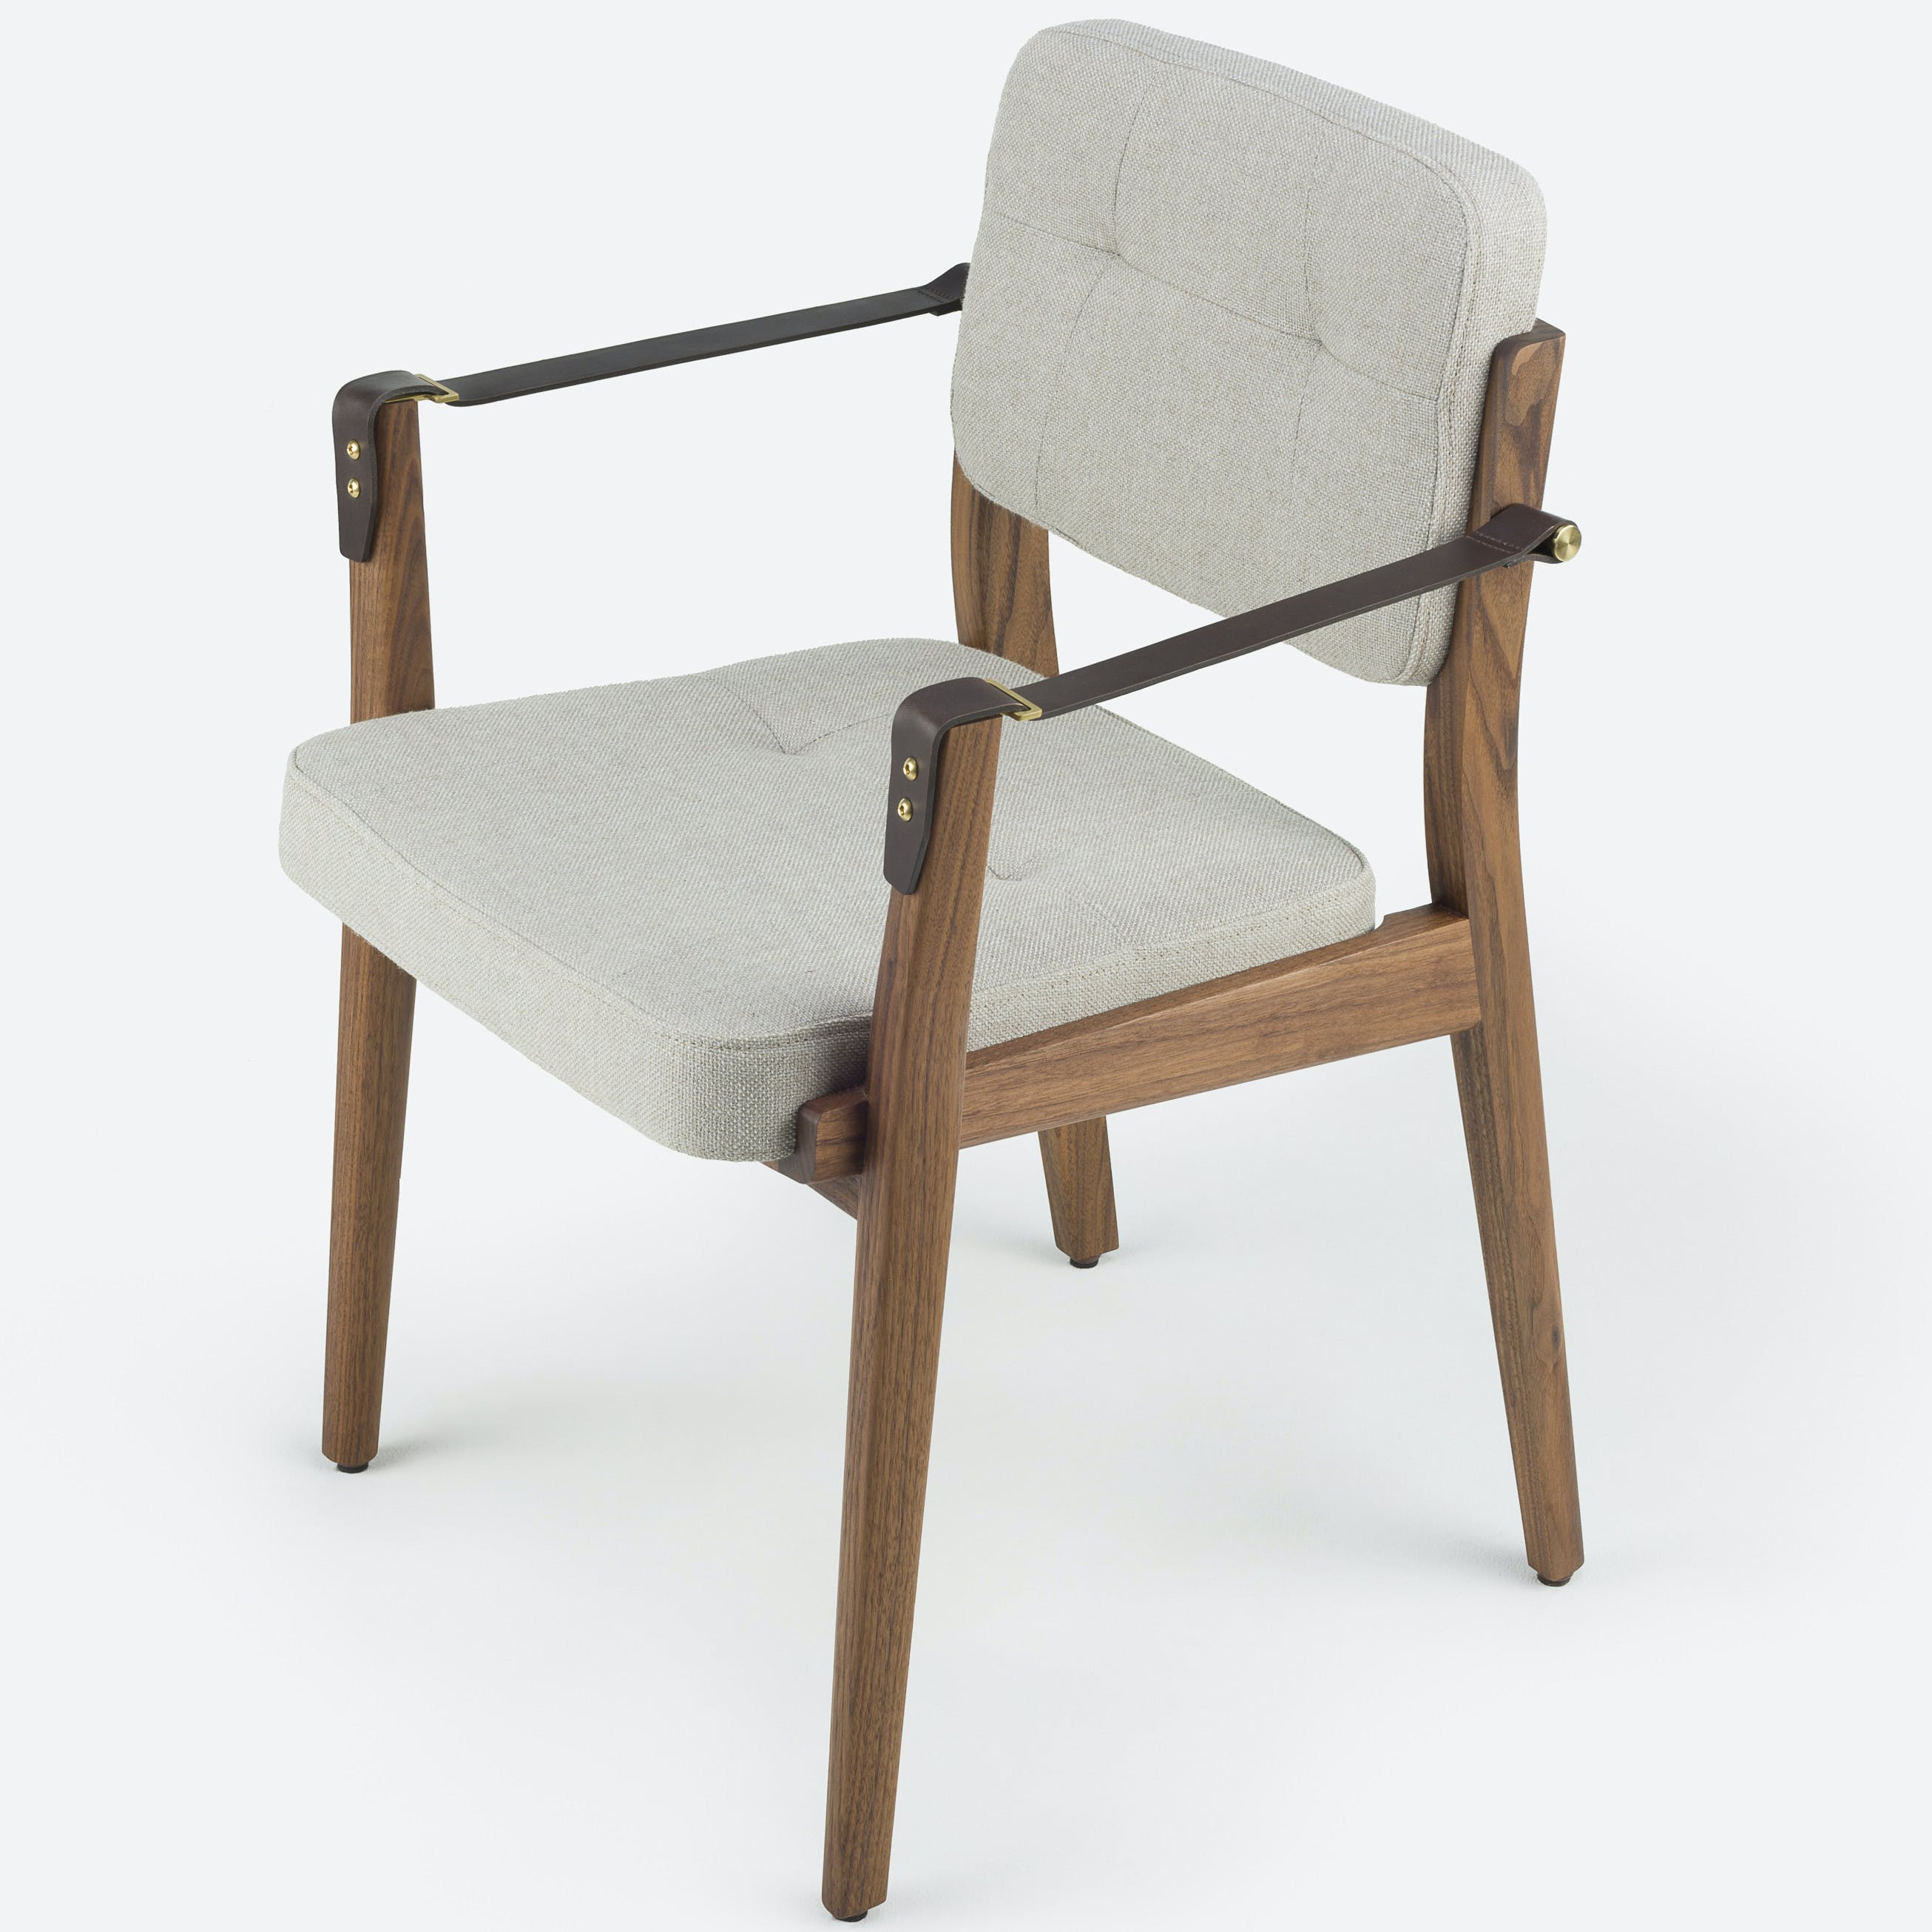 Capo Armchair By Nerihu2